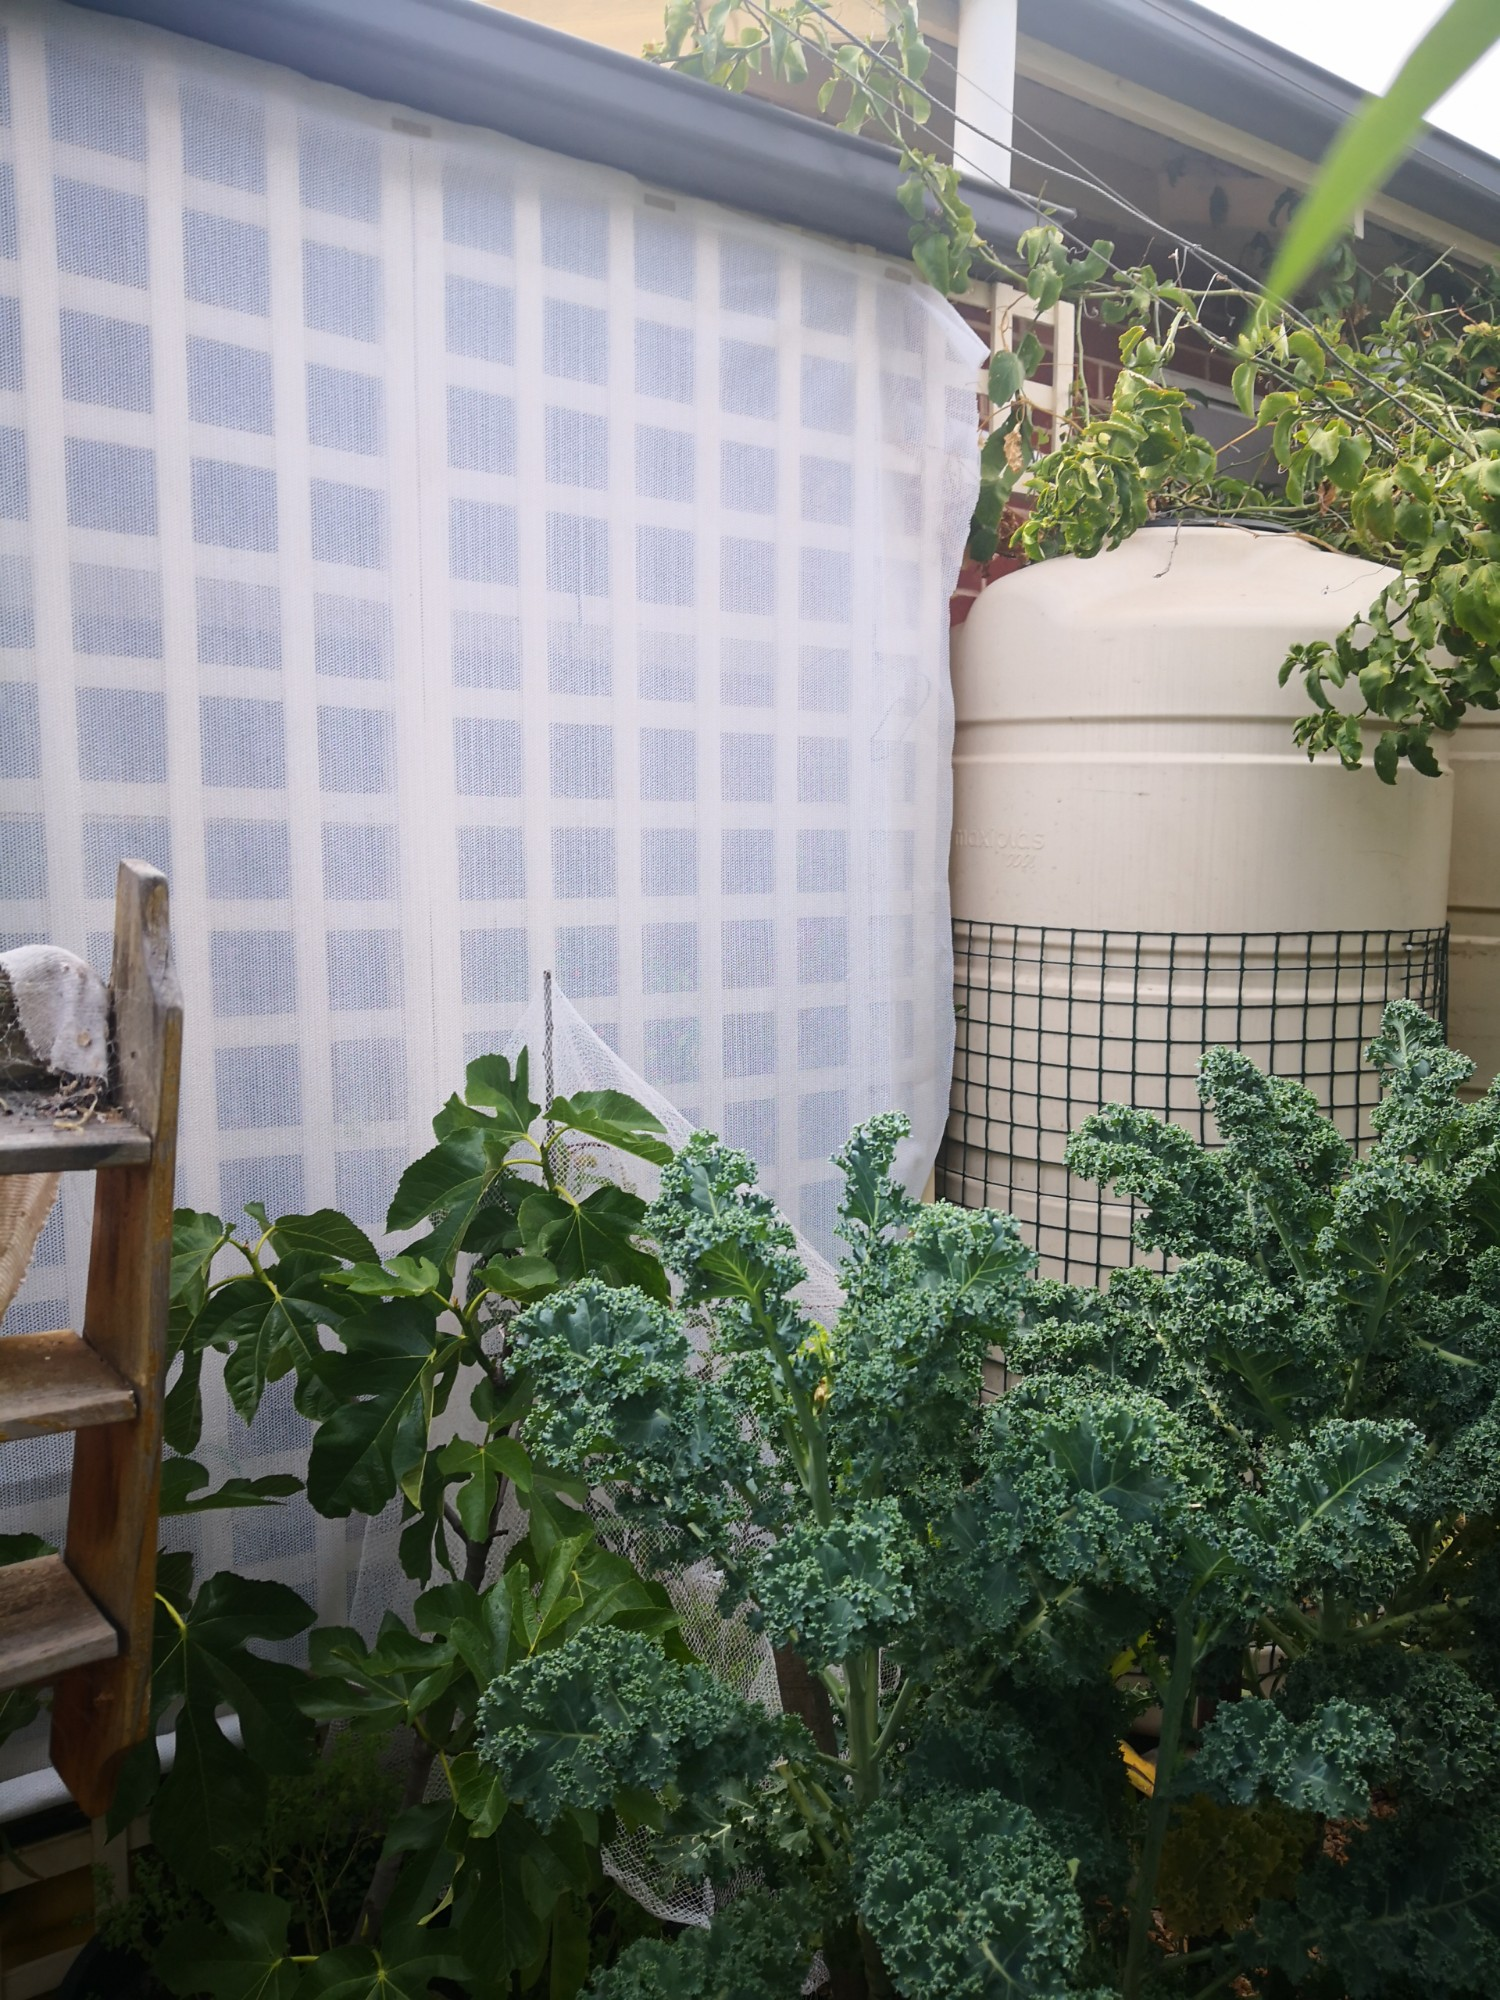 A double layer- plants and shade cloth. The rain tank acts as thermal mass.